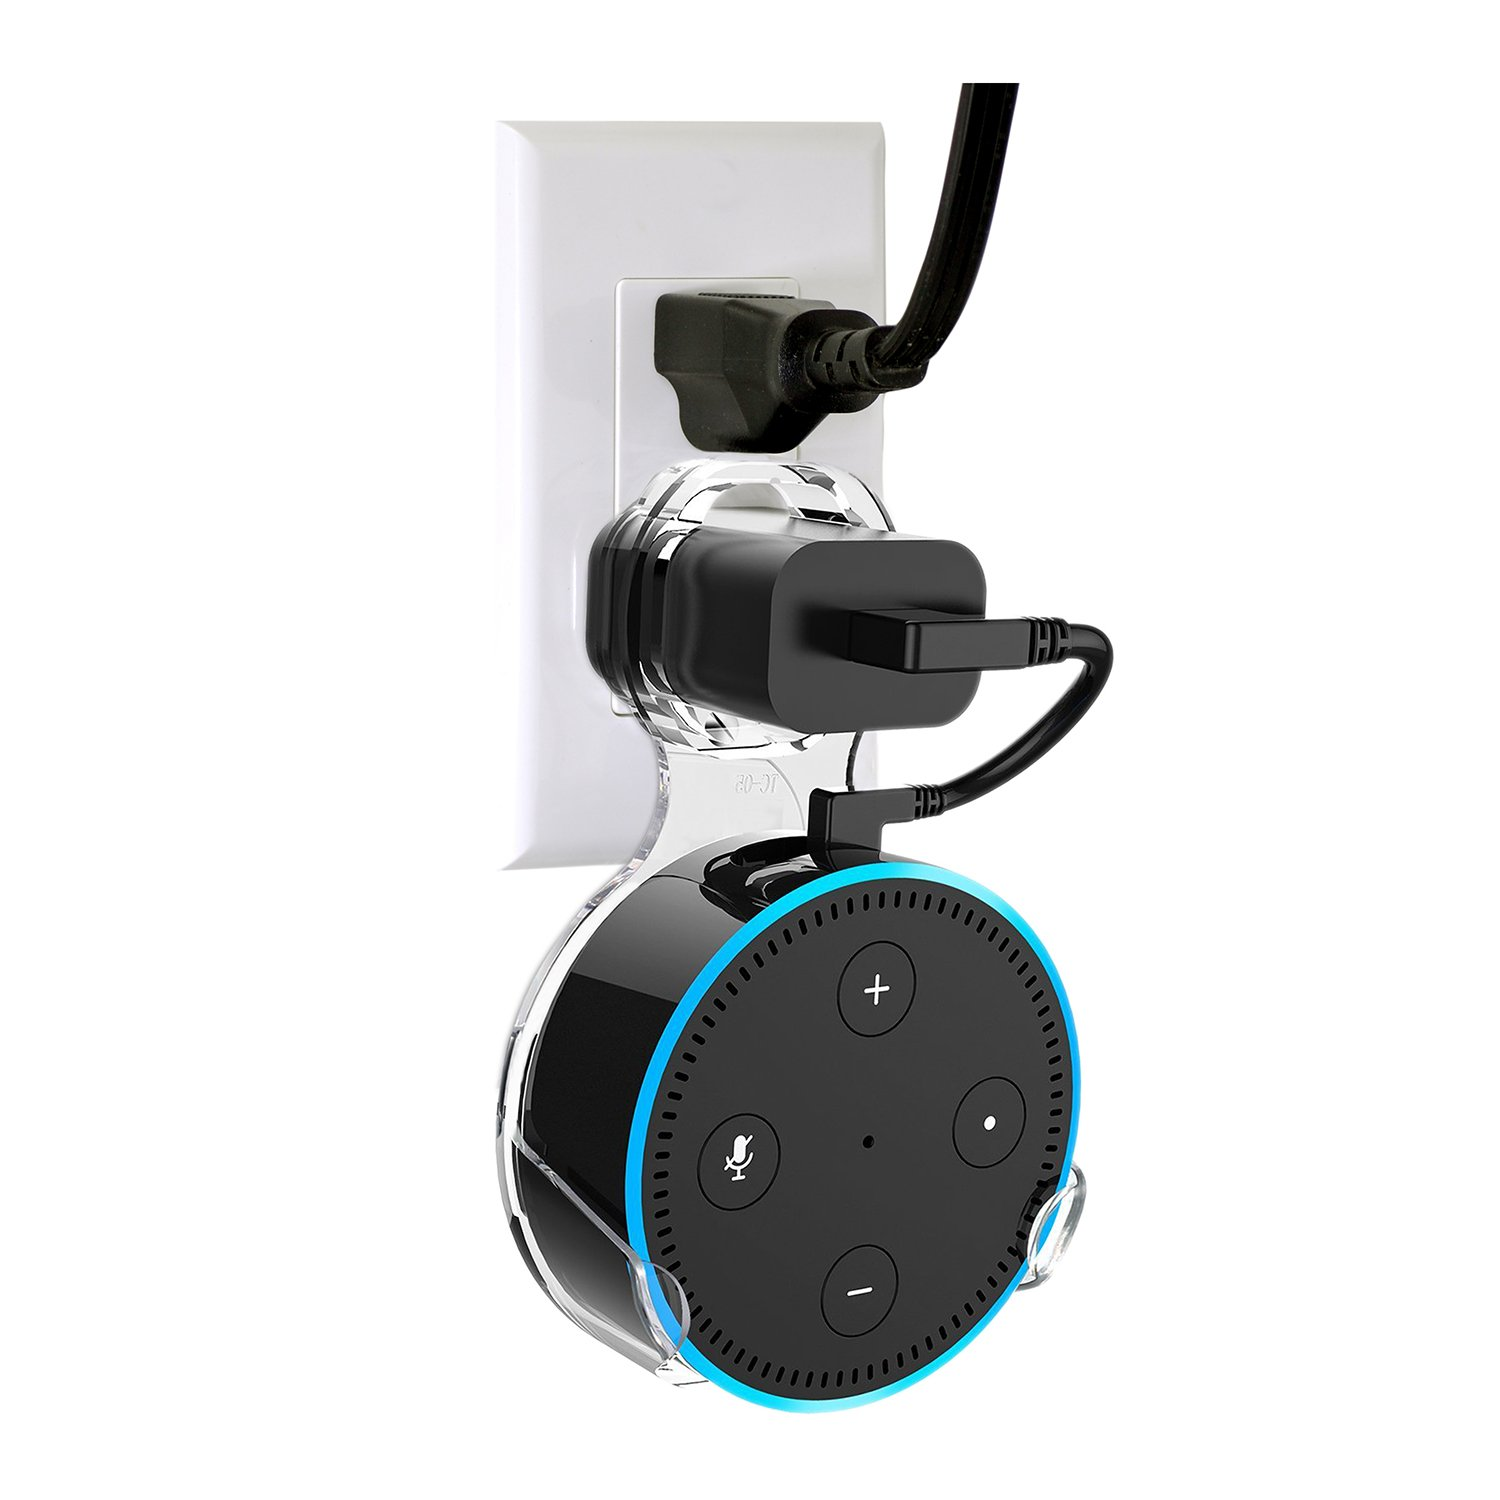 Wall Mount Hanger Holder Stand Echo Dot 2nd Generation Some Round Speakers,Without Messy Wires Screws,A Space-Saving Solution Your Smart Home Speakers (Transparent,1-Pack)